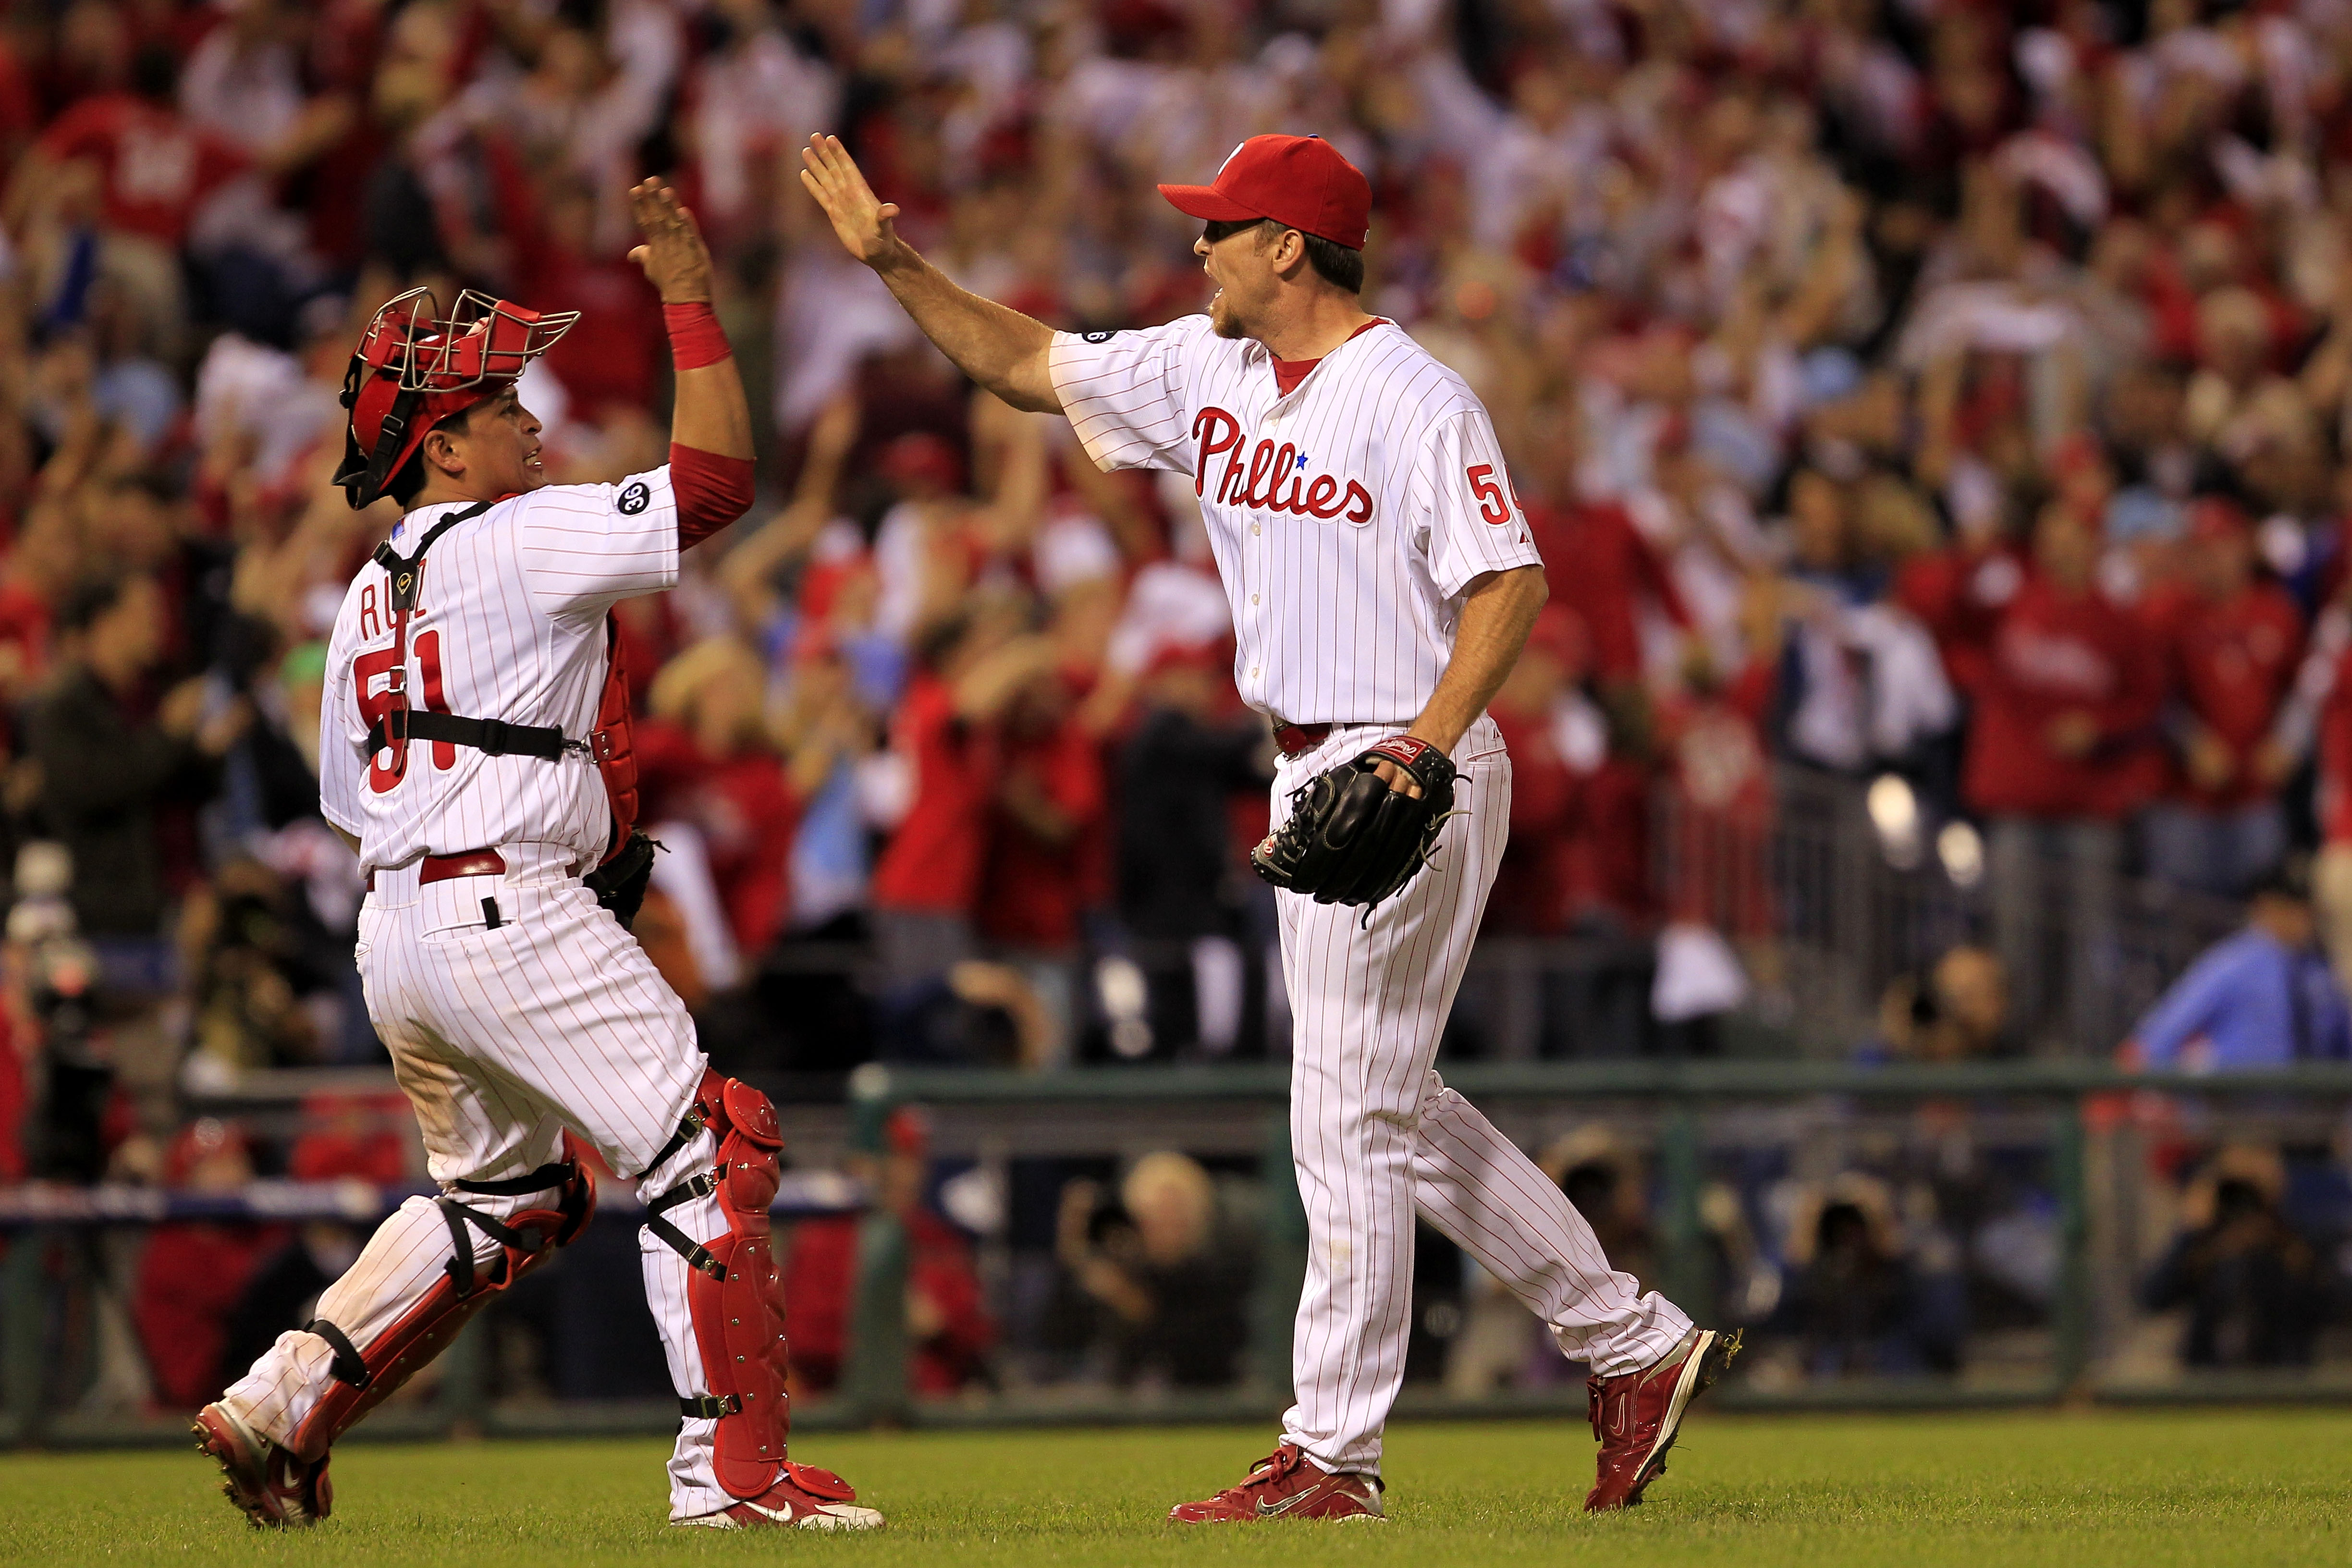 PHILADELPHIA - OCTOBER 08:  Carlos Ruiz #51 and Brad Lidge #54 of the Philadelphia Phillies celebrate a victory over the Cincinnati Reds in game 2 of NLDS at Citizens Bank Park on October 8, 2010 in Philadelphia, Pennsylvania. The Phillies defeated the Re